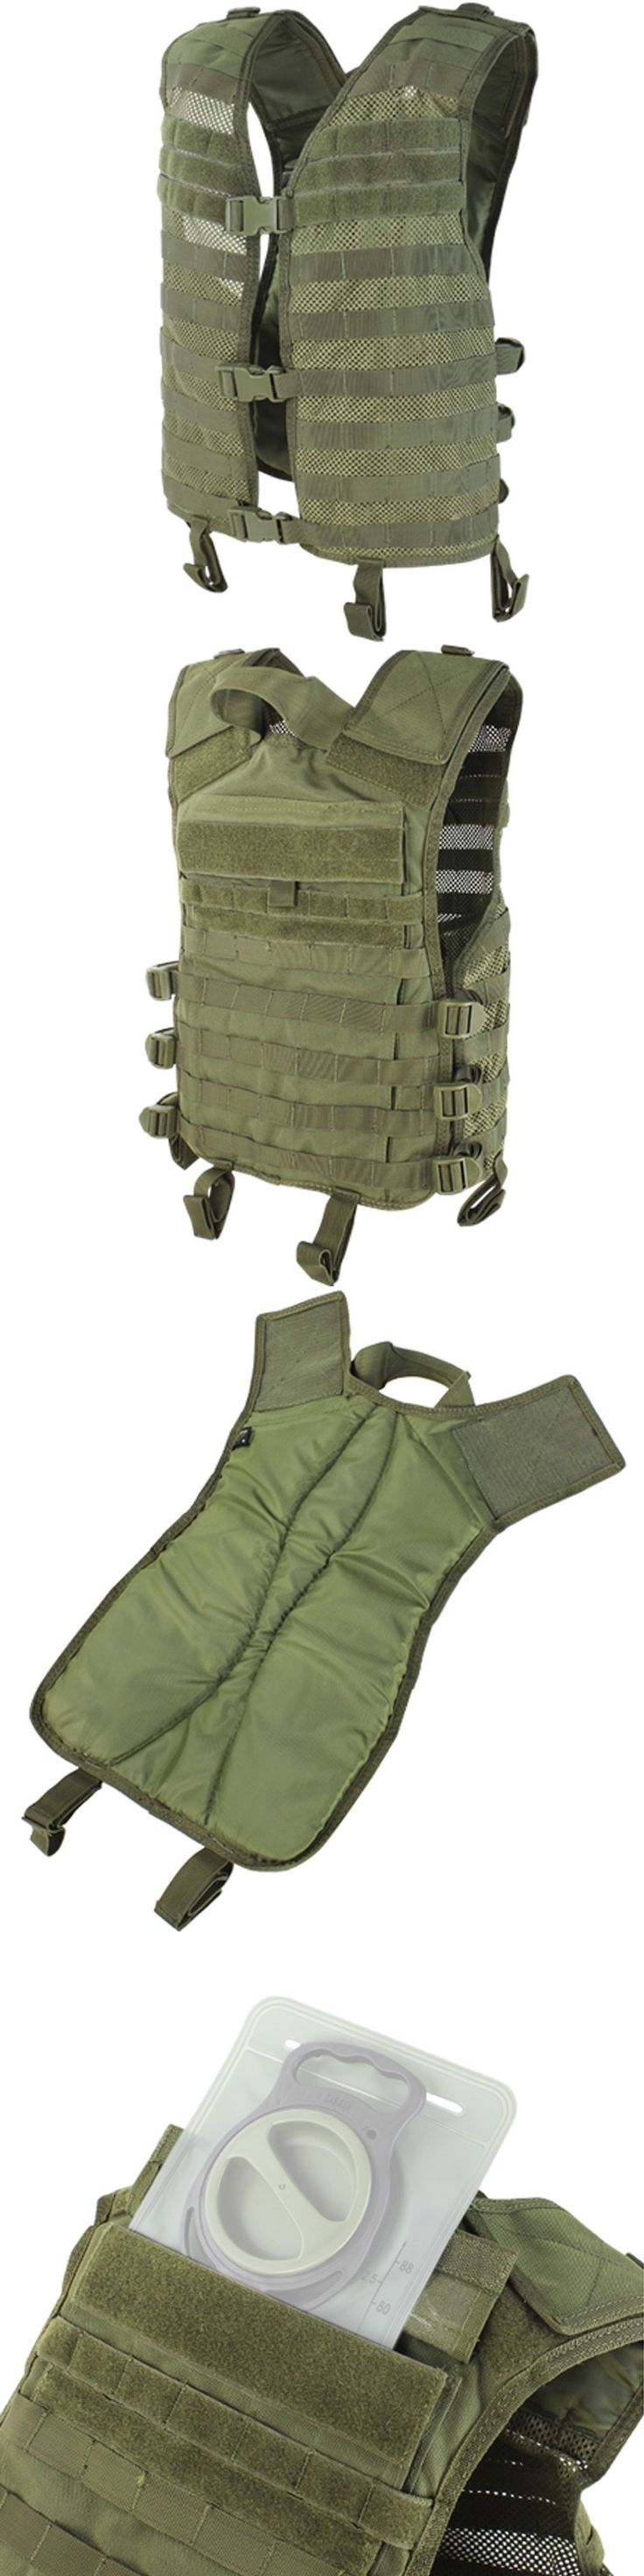 Clothing and Protective Gear 159044: Condor Outdoor Mhv-001 Modular Hydration Molle Pals Military Tactical Vest Od -> BUY IT NOW ONLY: $41.95 on eBay!